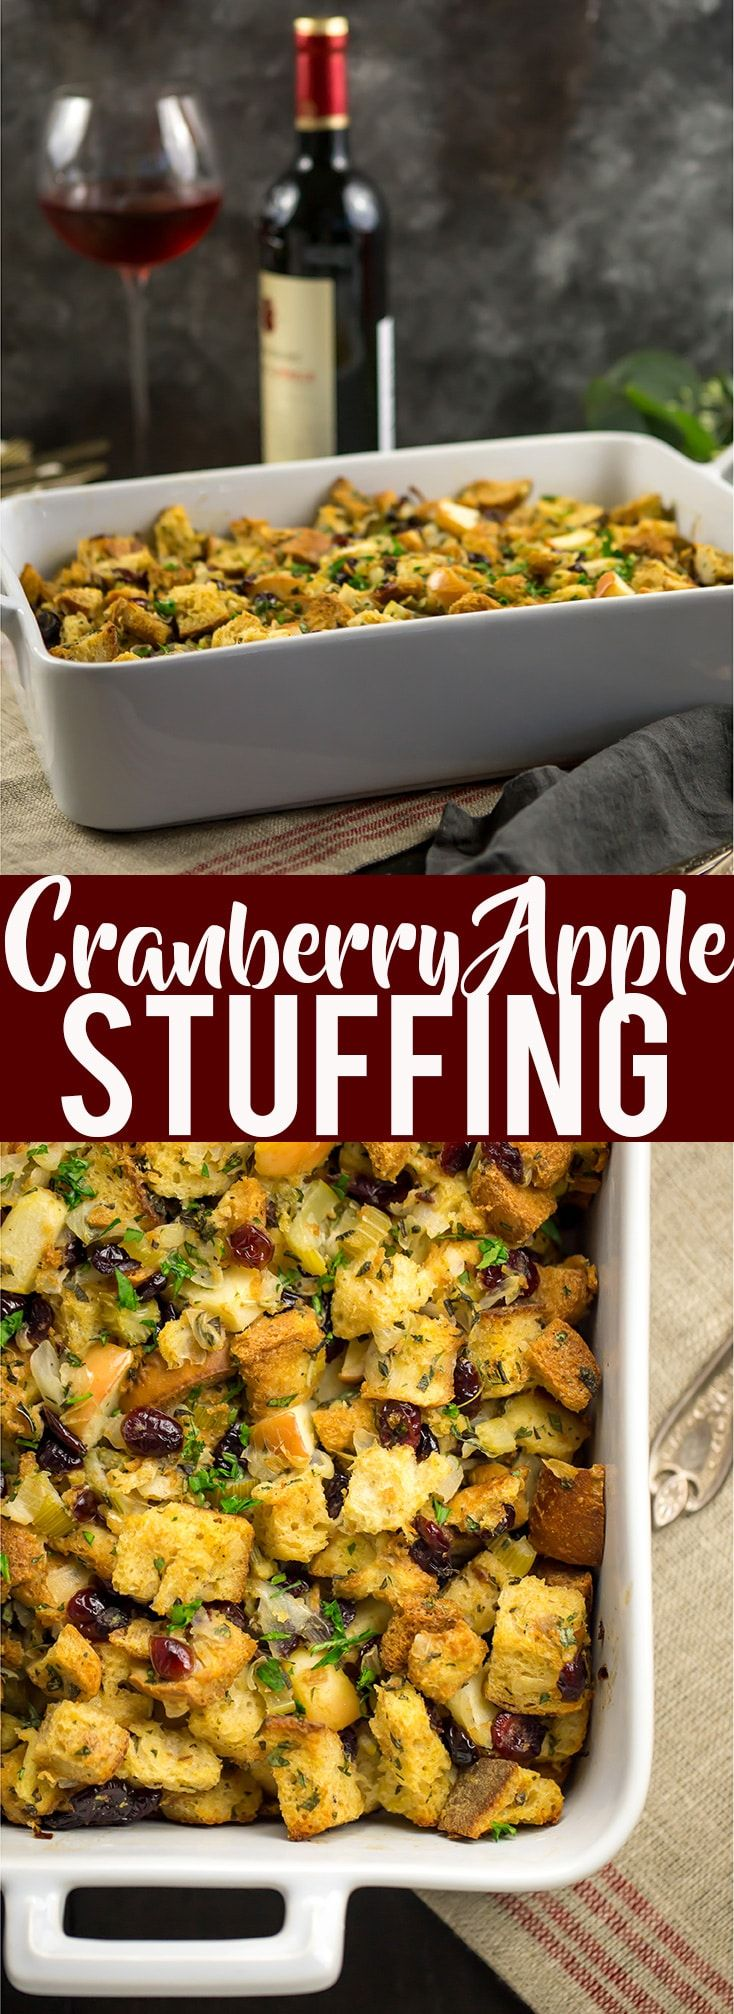 Cranberry apple stuffing recipe traditional stuffing